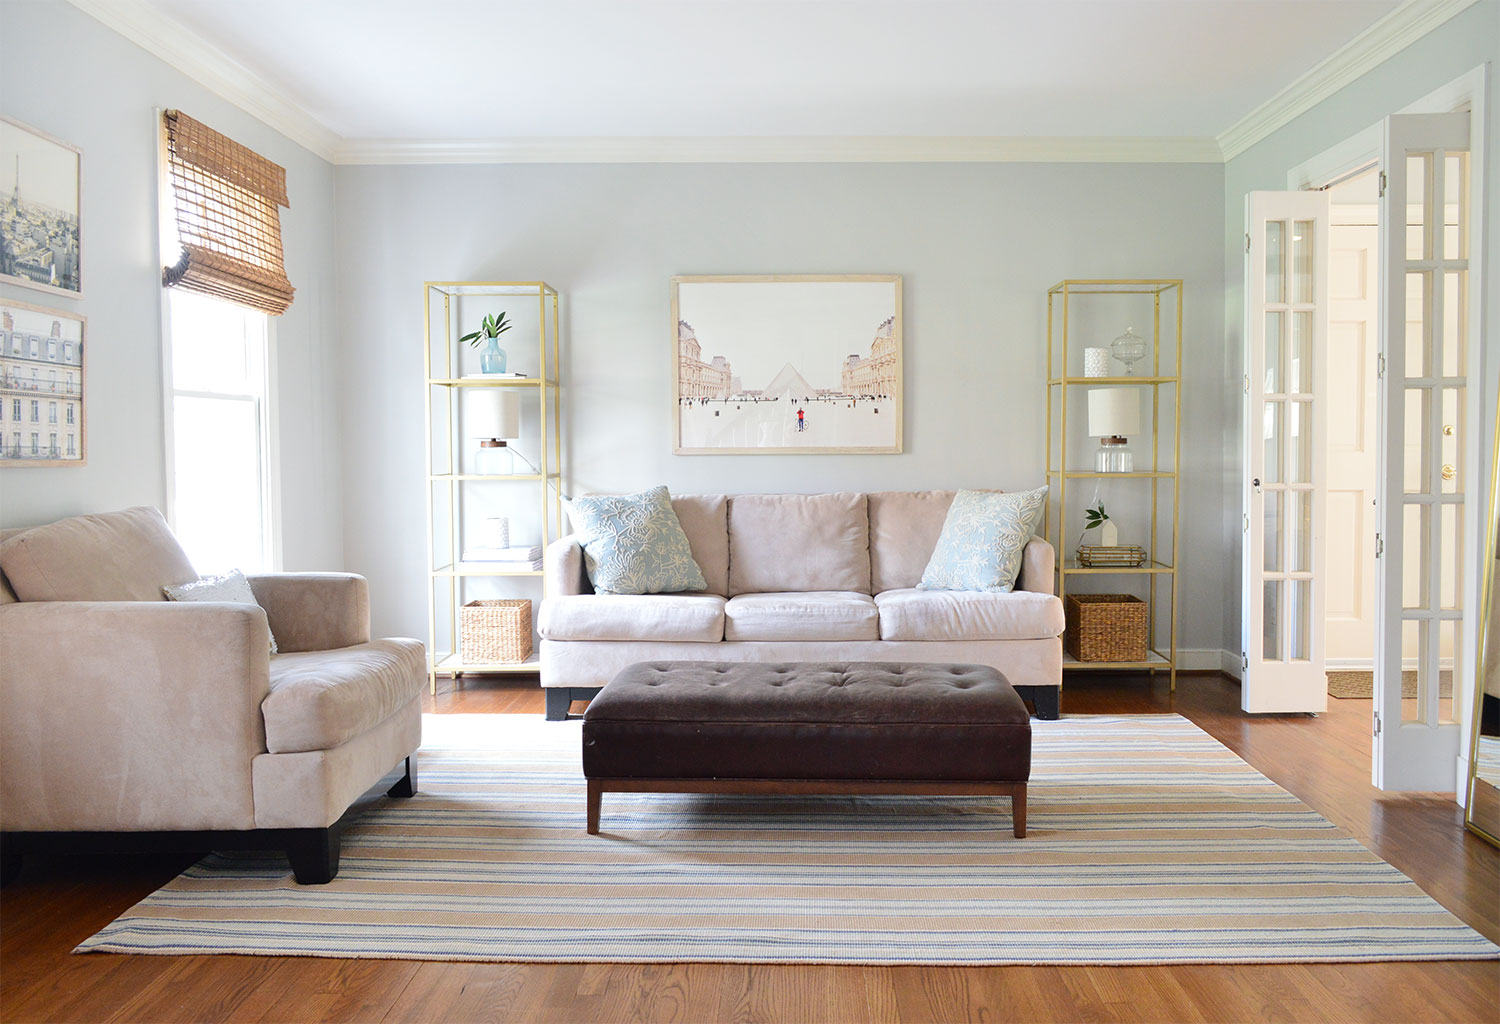 neutral living room staged to sell with some seating removed and simplified accessories